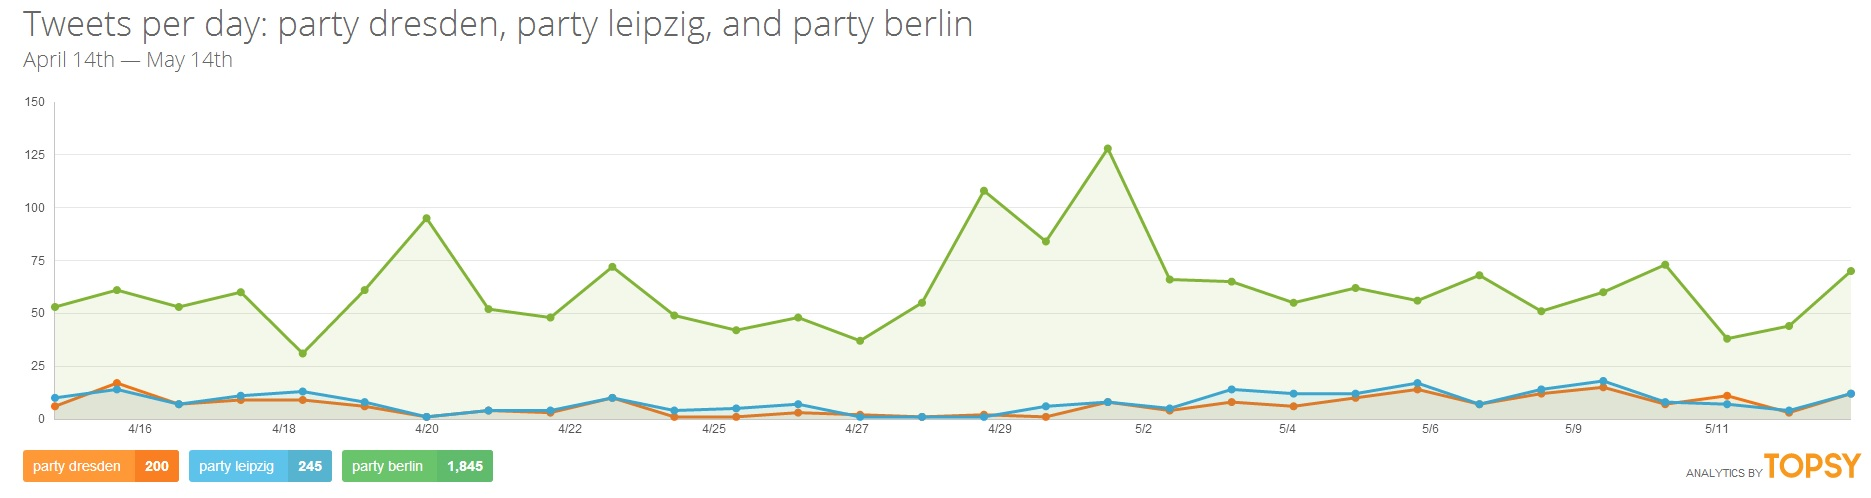 Party Dresden vs. Party Leipzig vs. Party Berlin